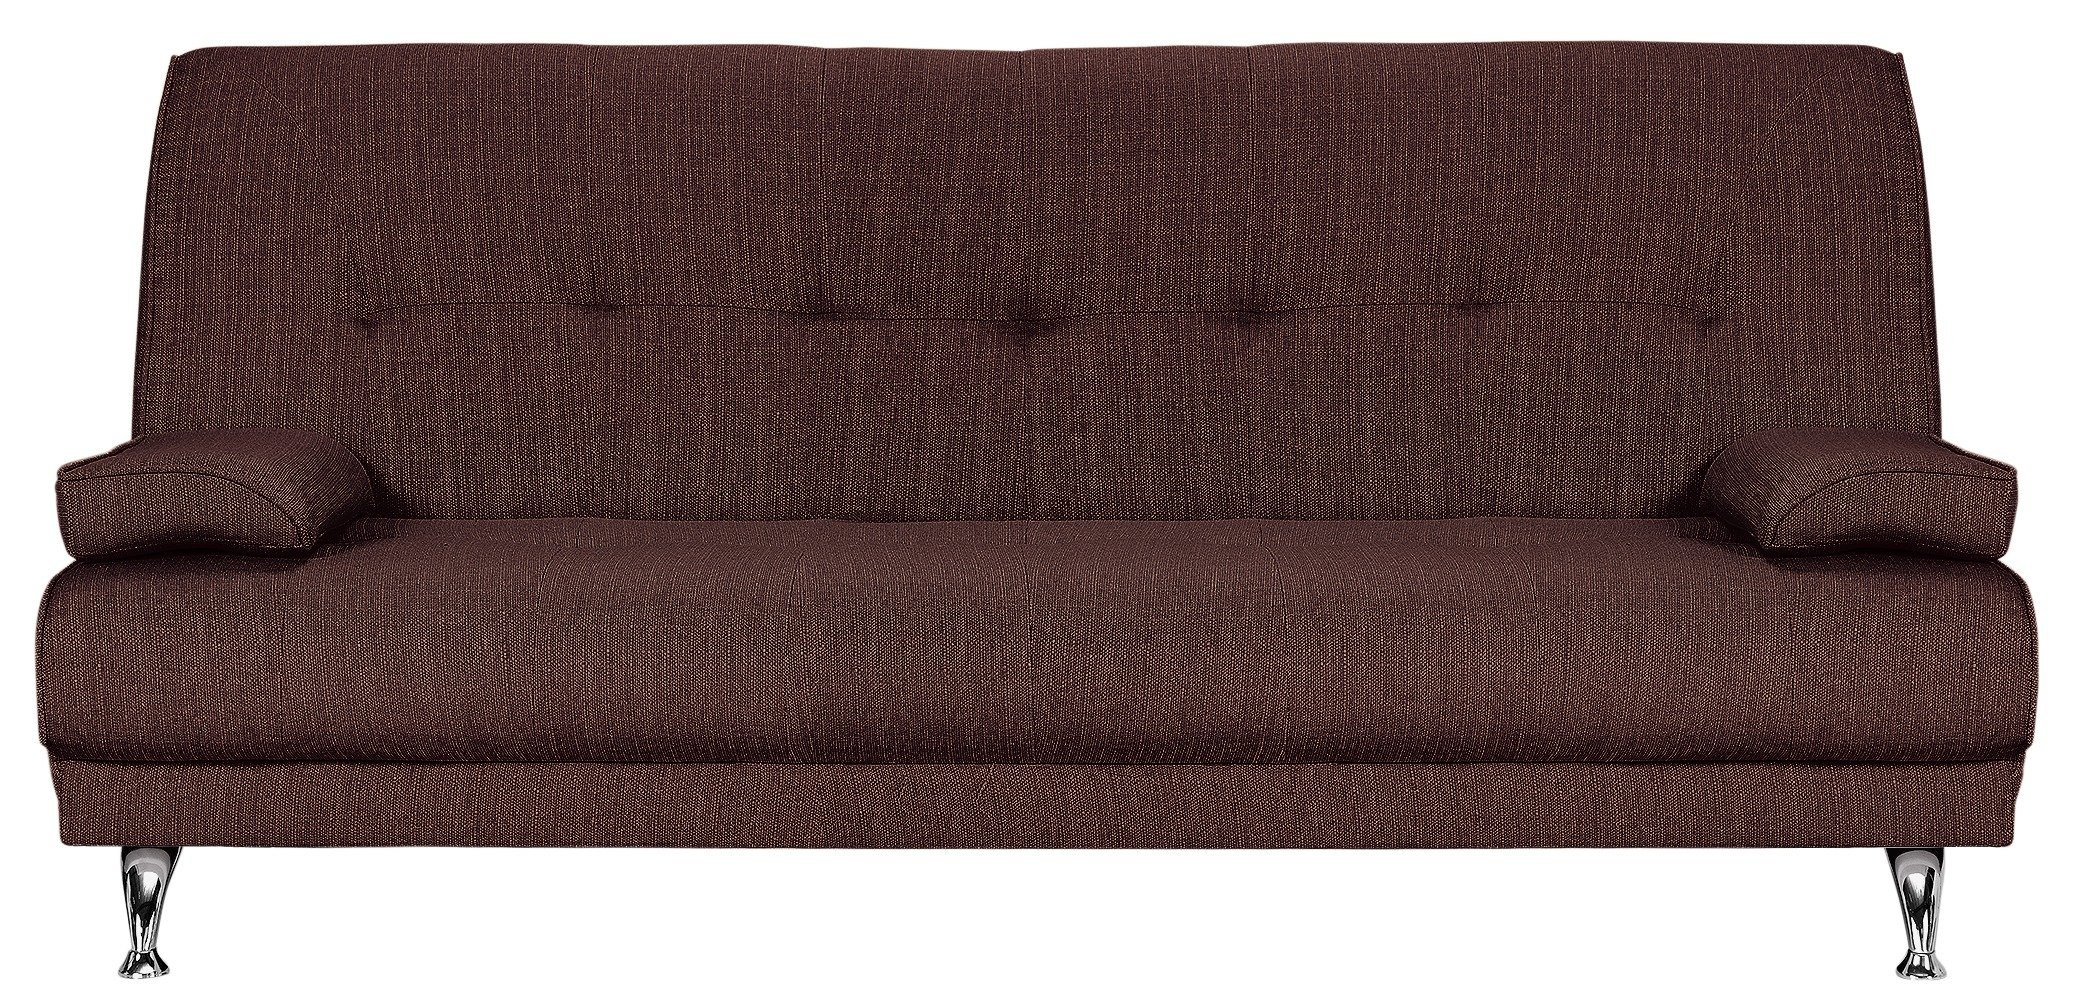 Home - Sicily - 2 Seater Fabric Clic Clac - Sofa Bed - Chocolate lowest price